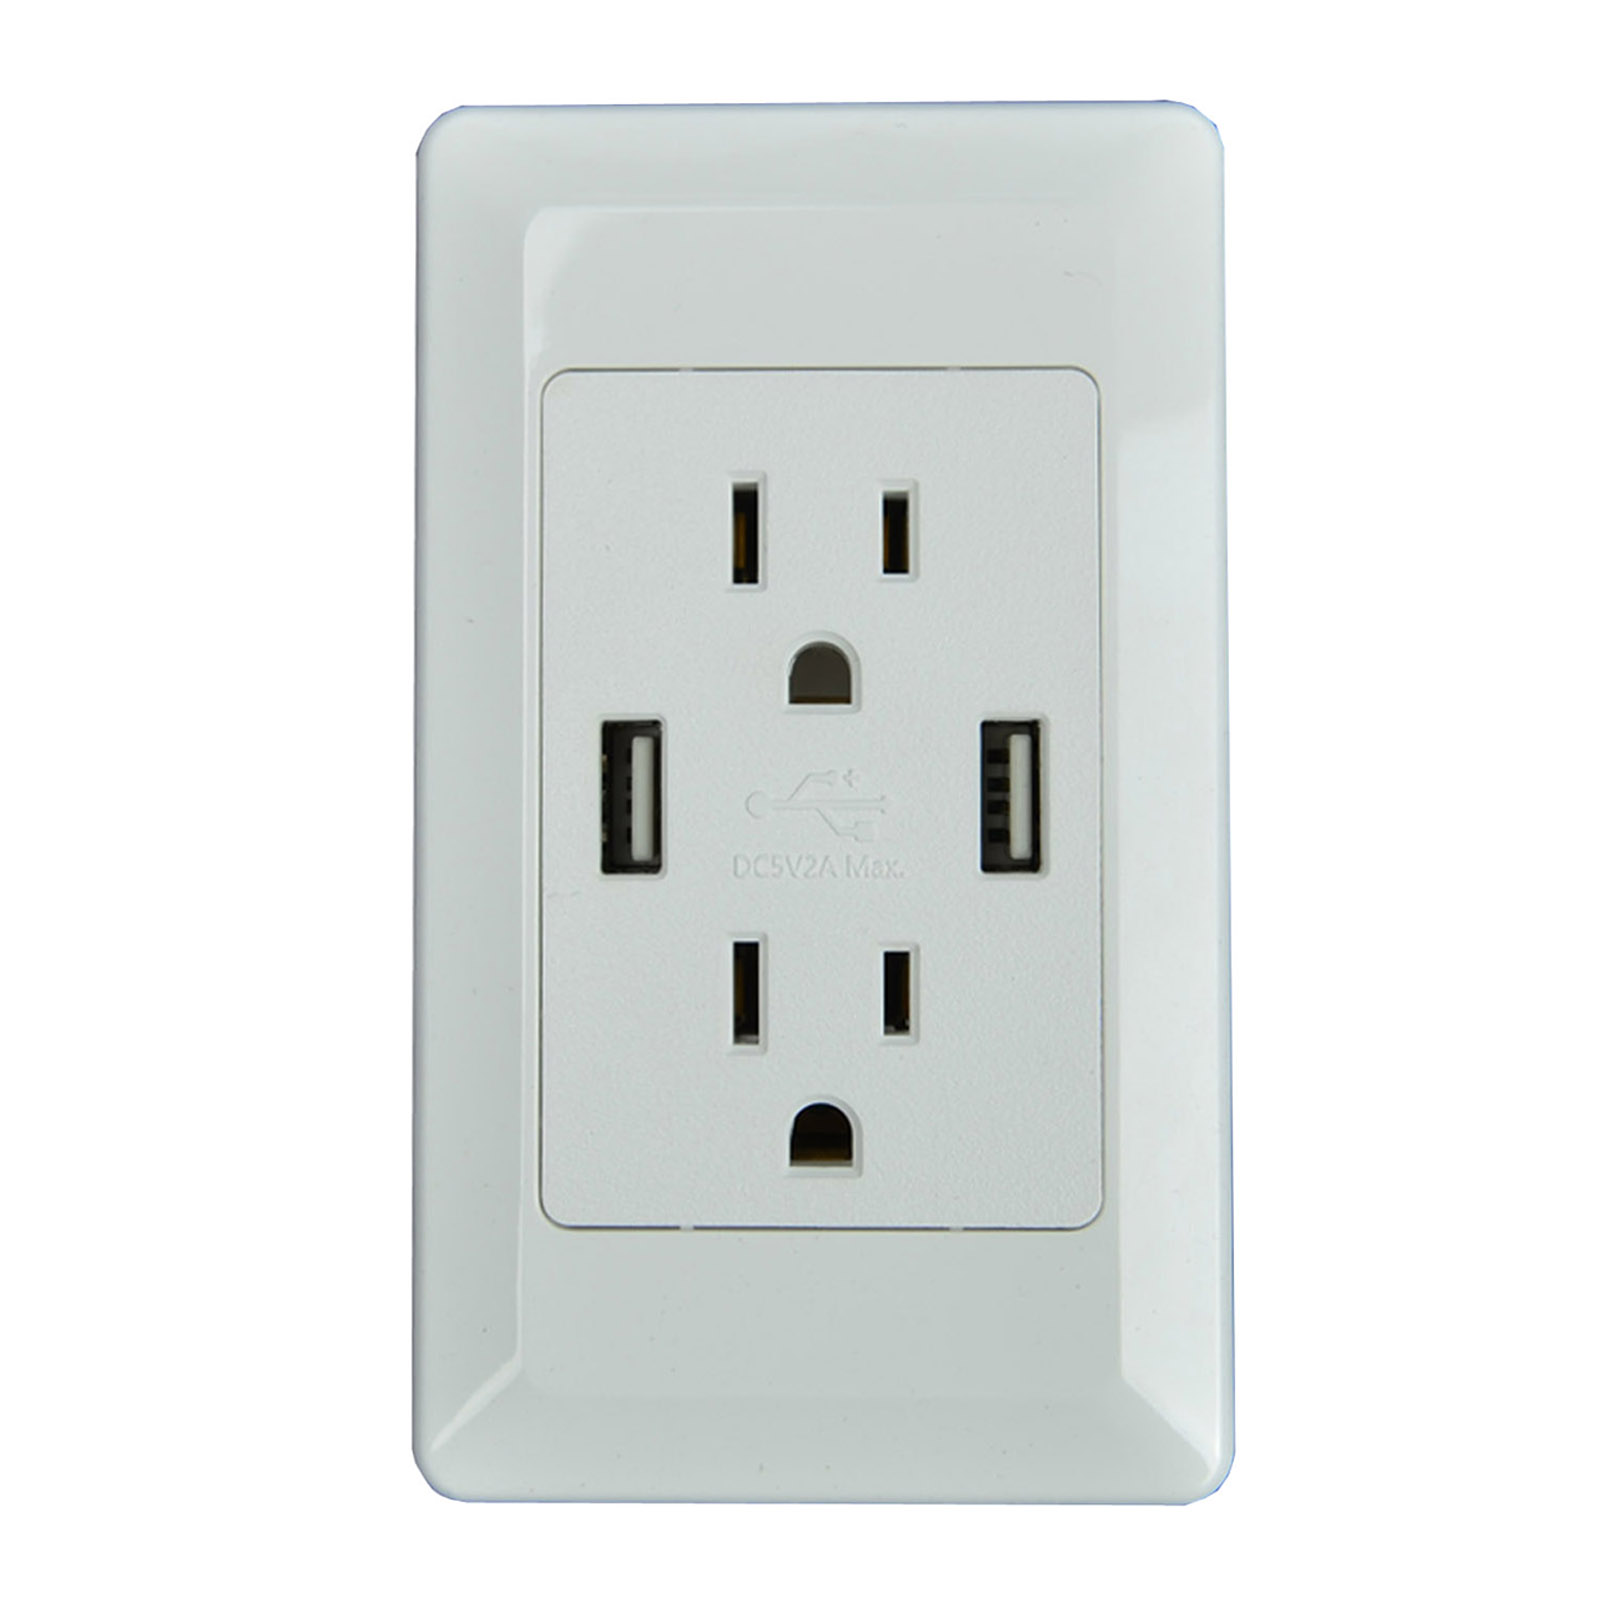 ETL Listed! White USB Wall Outlet 5V 2A AC Power Outlet Standard US ...